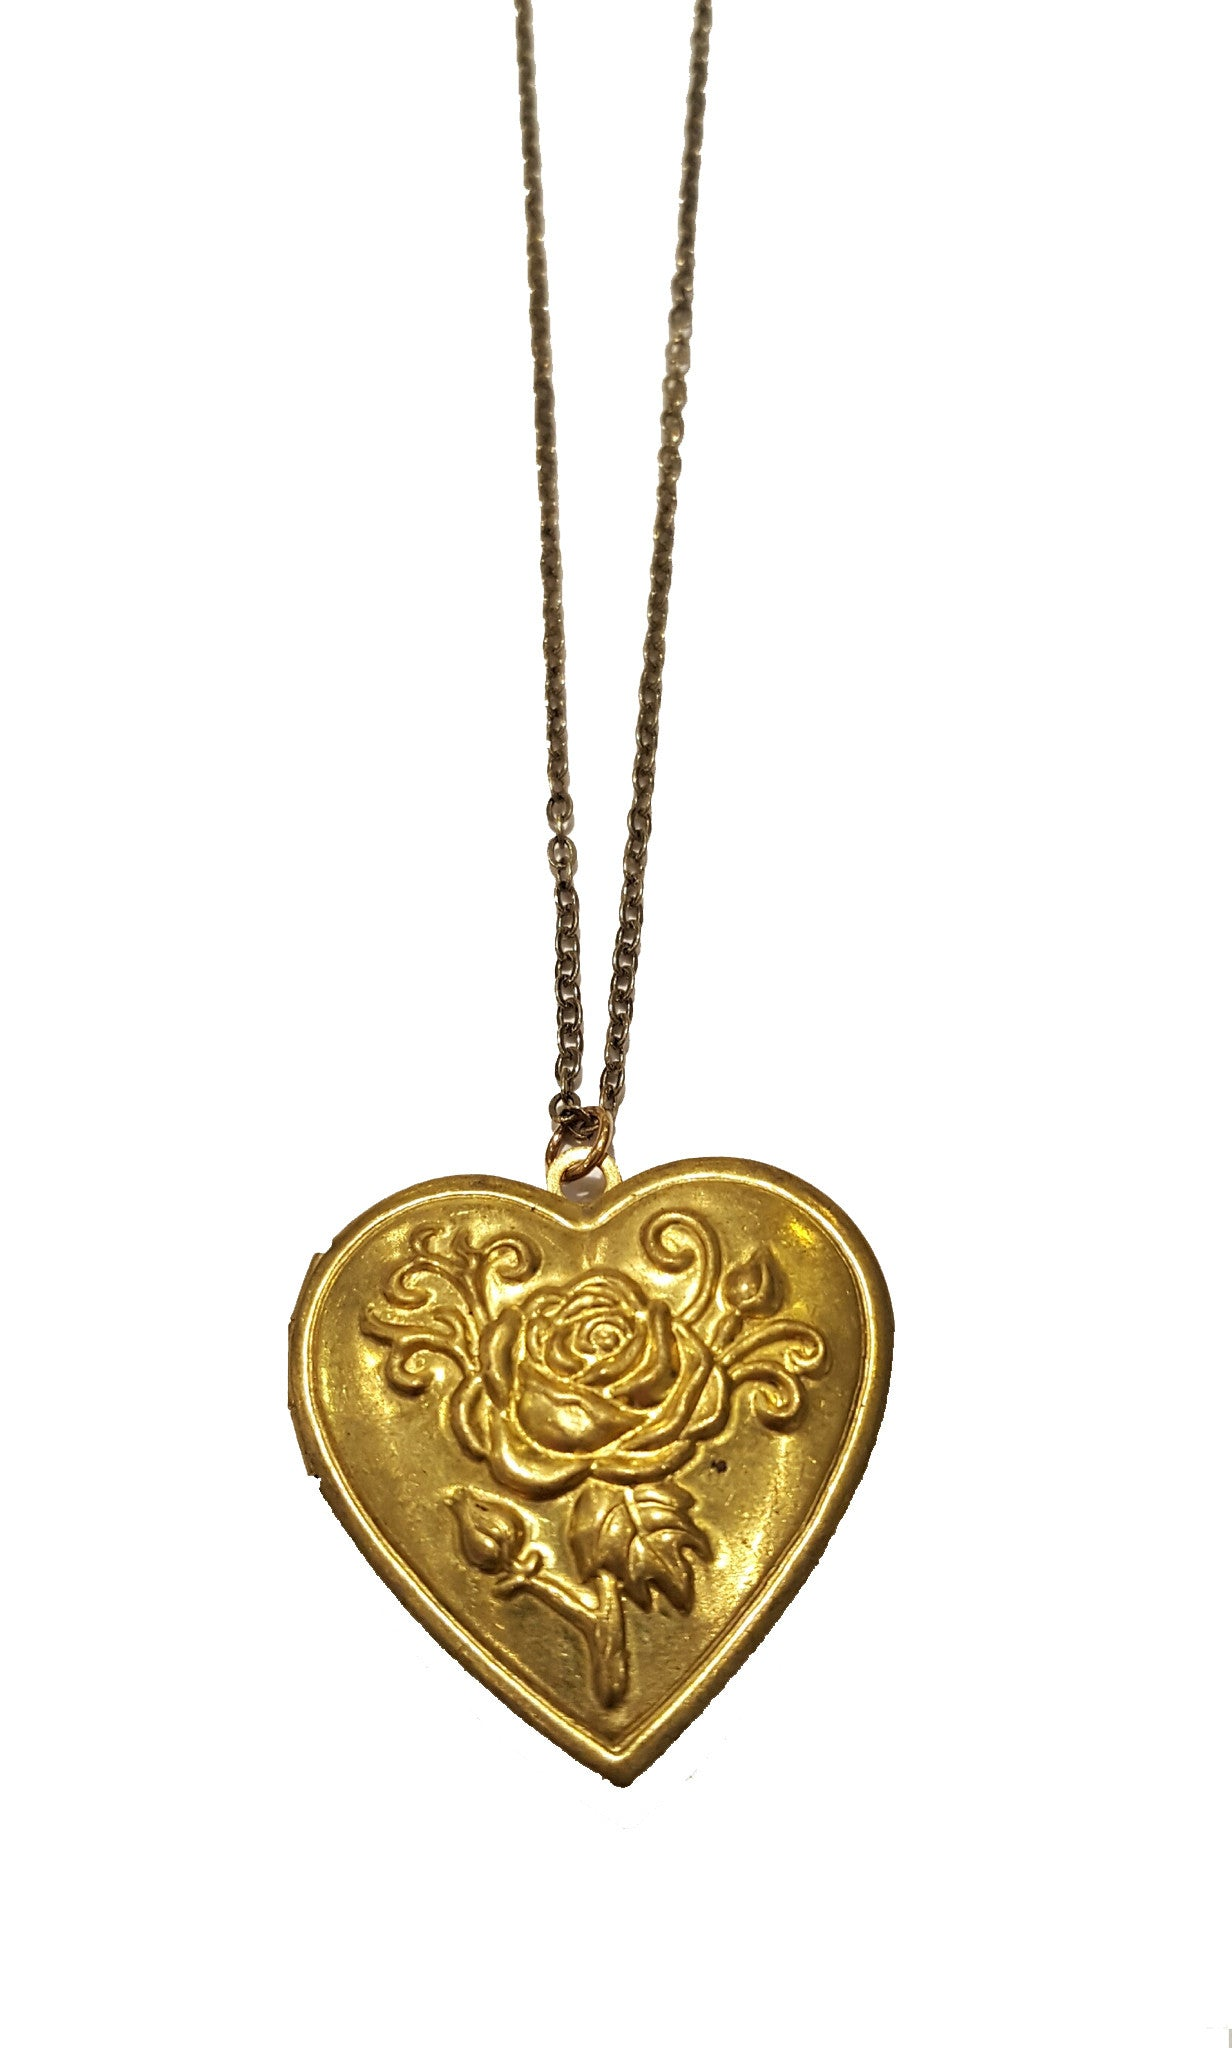 Gold Heart-Shaped Locket